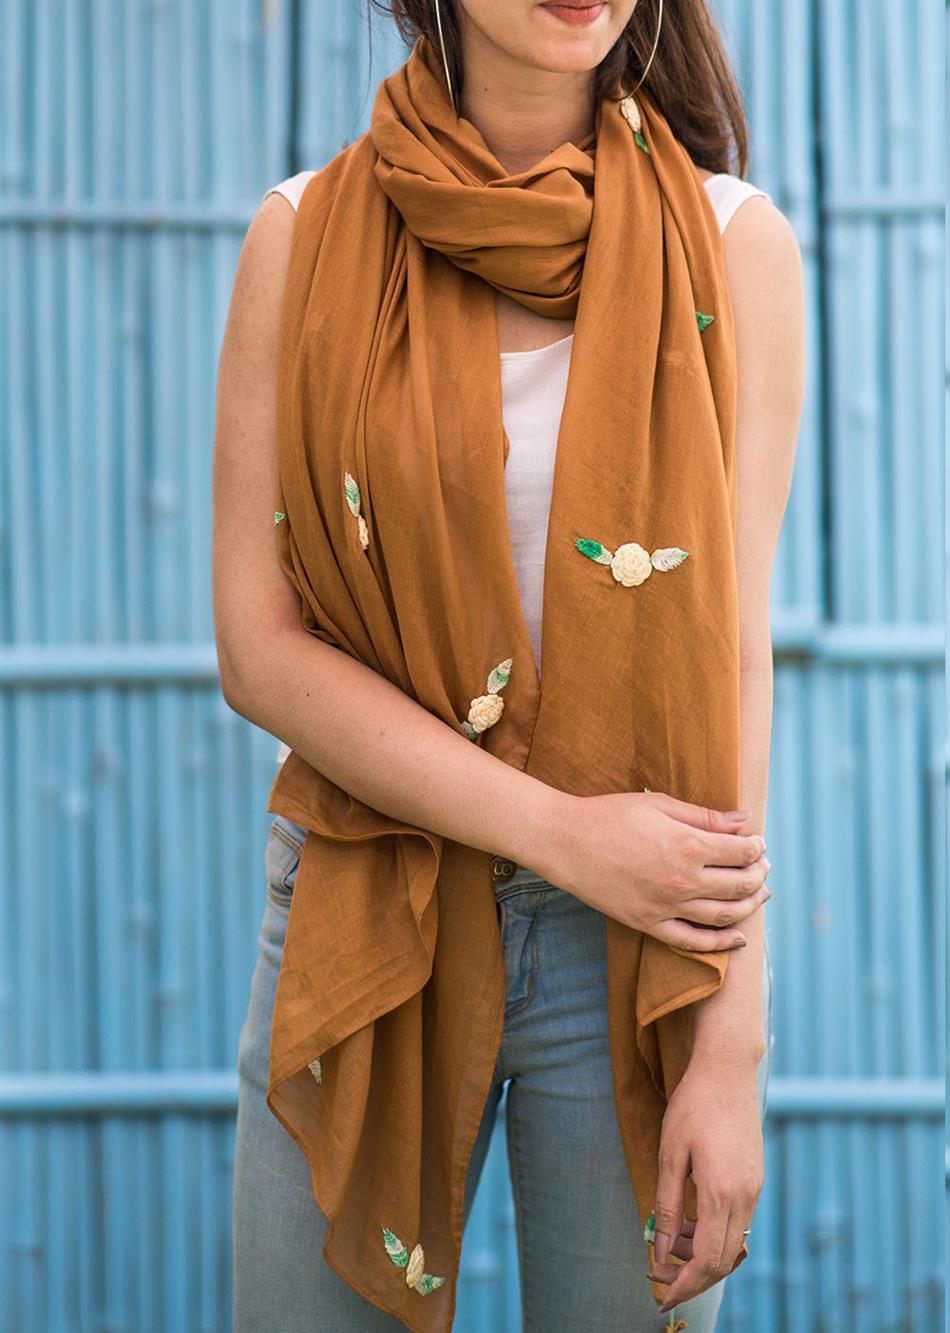 Balletic mood - Brown (Hand embroidered scarf)